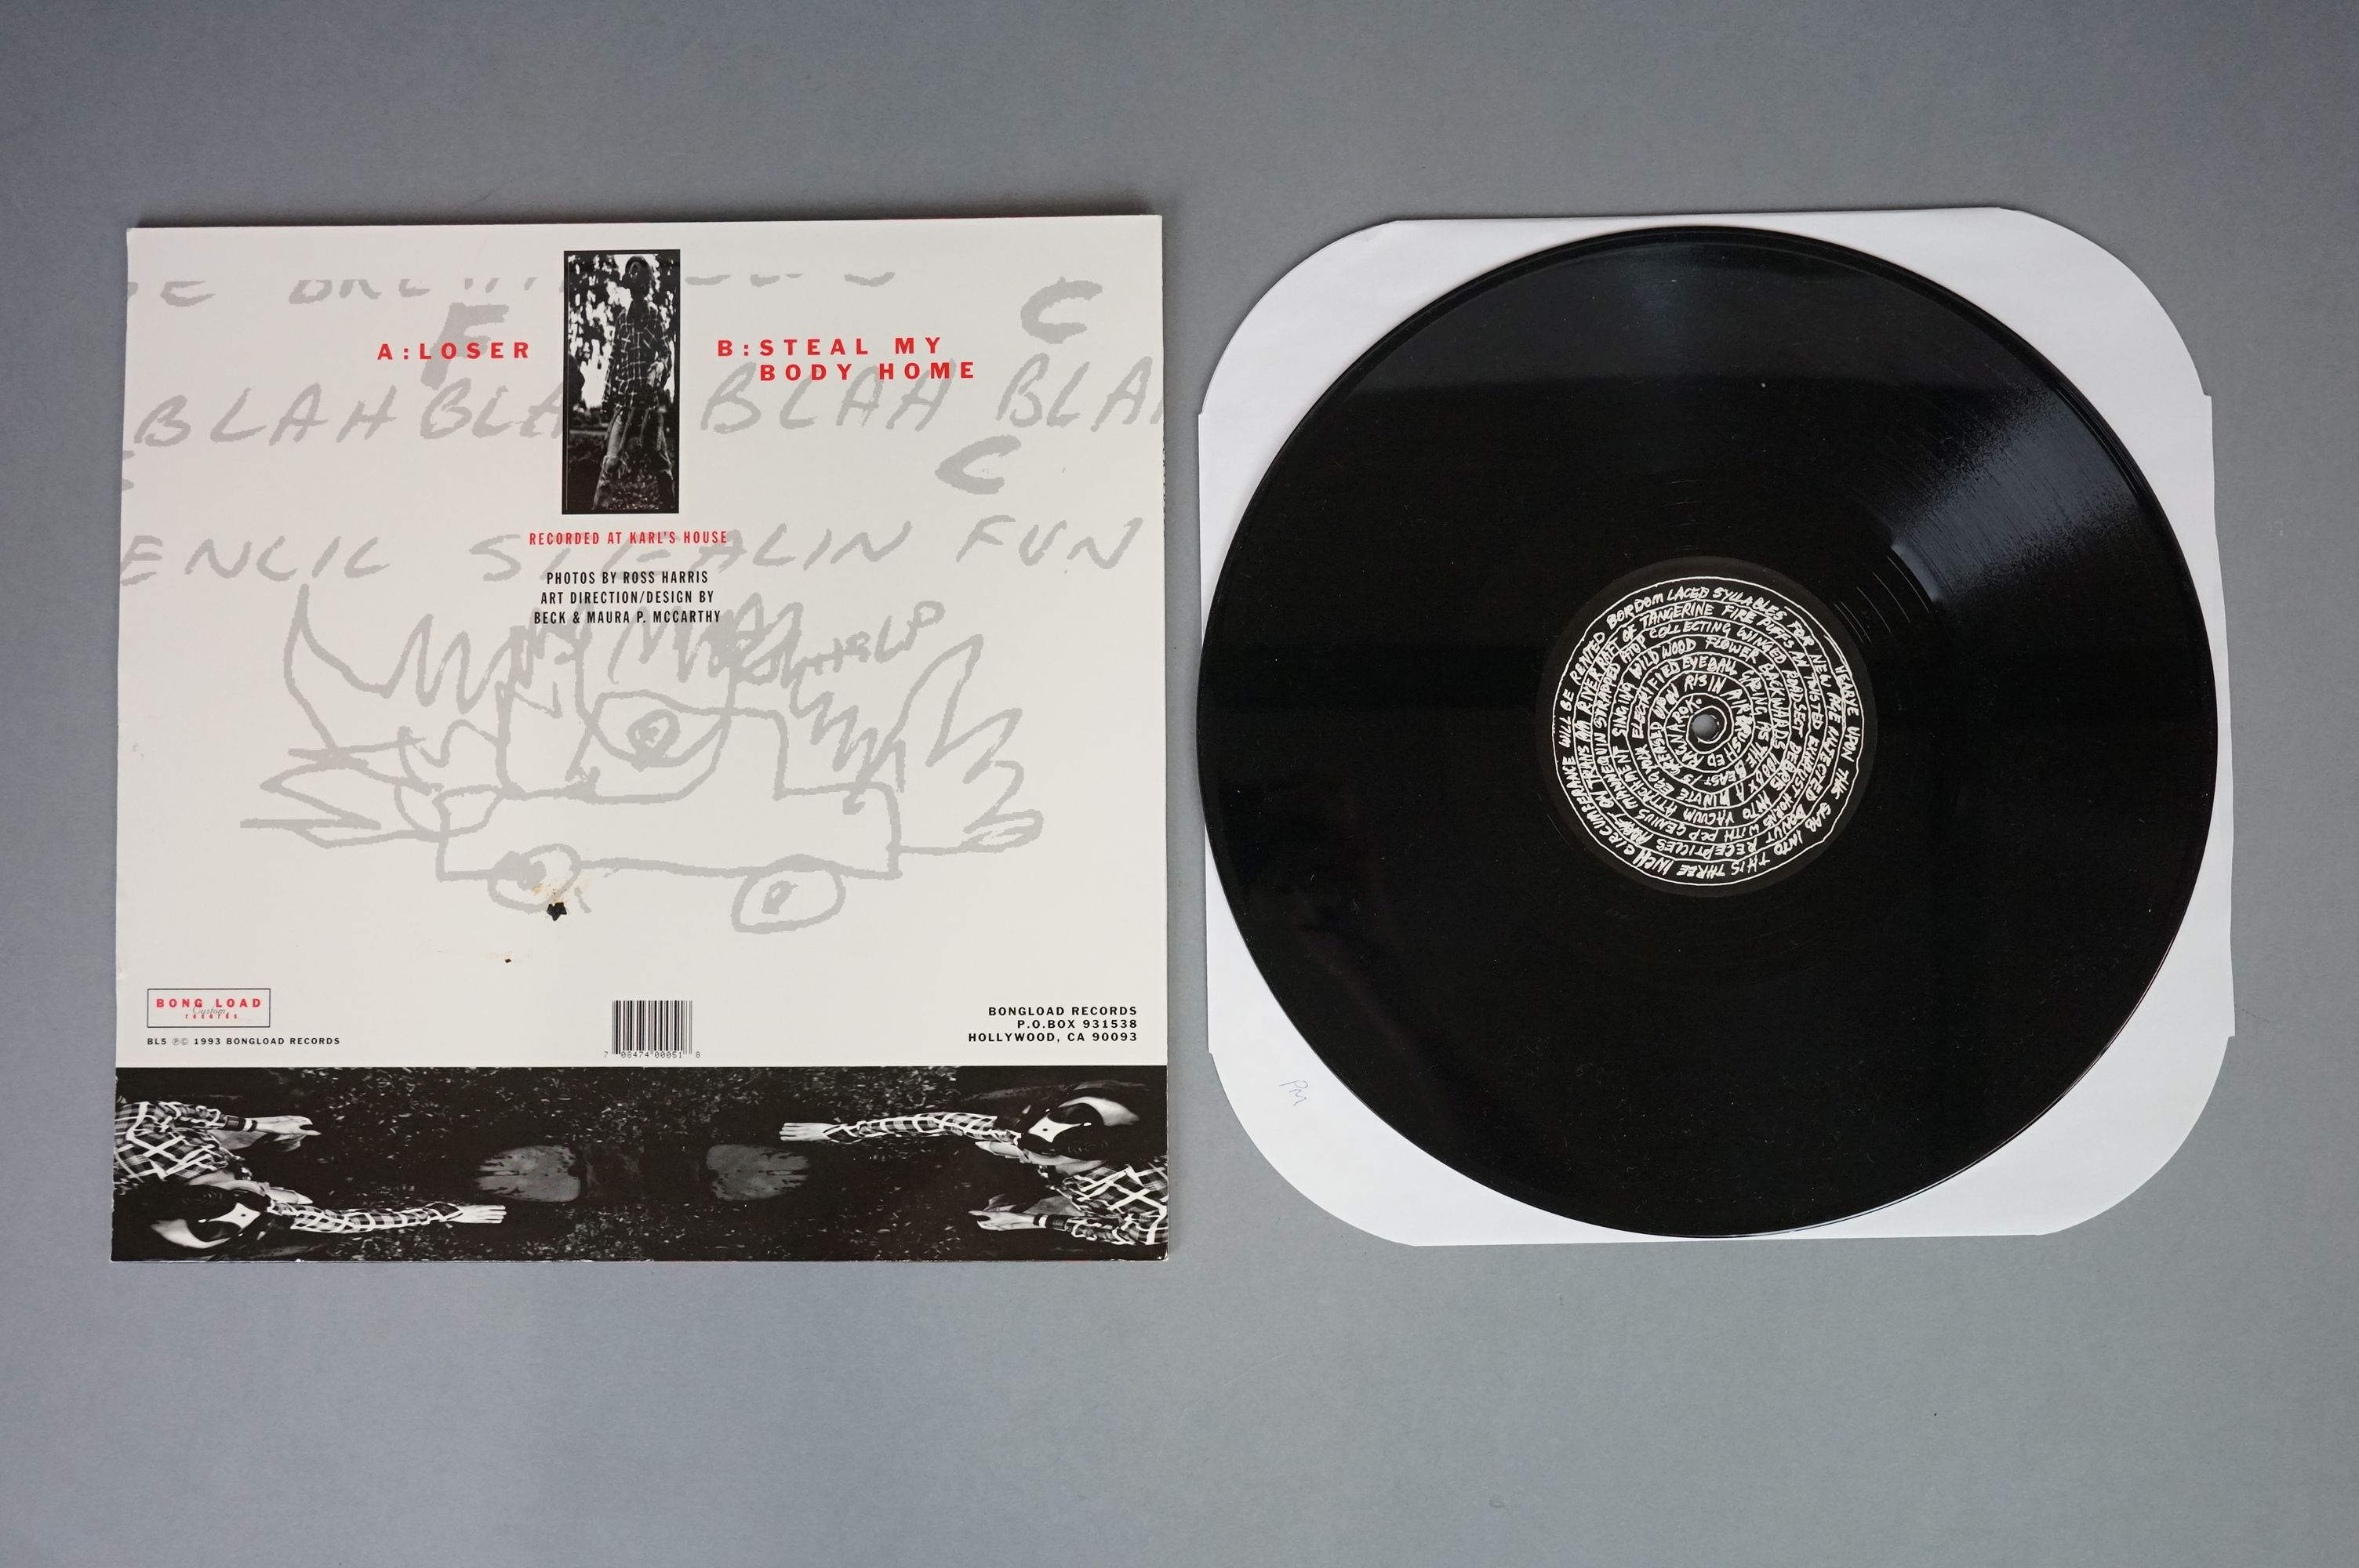 """Vinyl - Beck - Two 12"""" singles to include Loser BL5 and Where It's At, both vg+ with vendor initials - Image 3 of 6"""